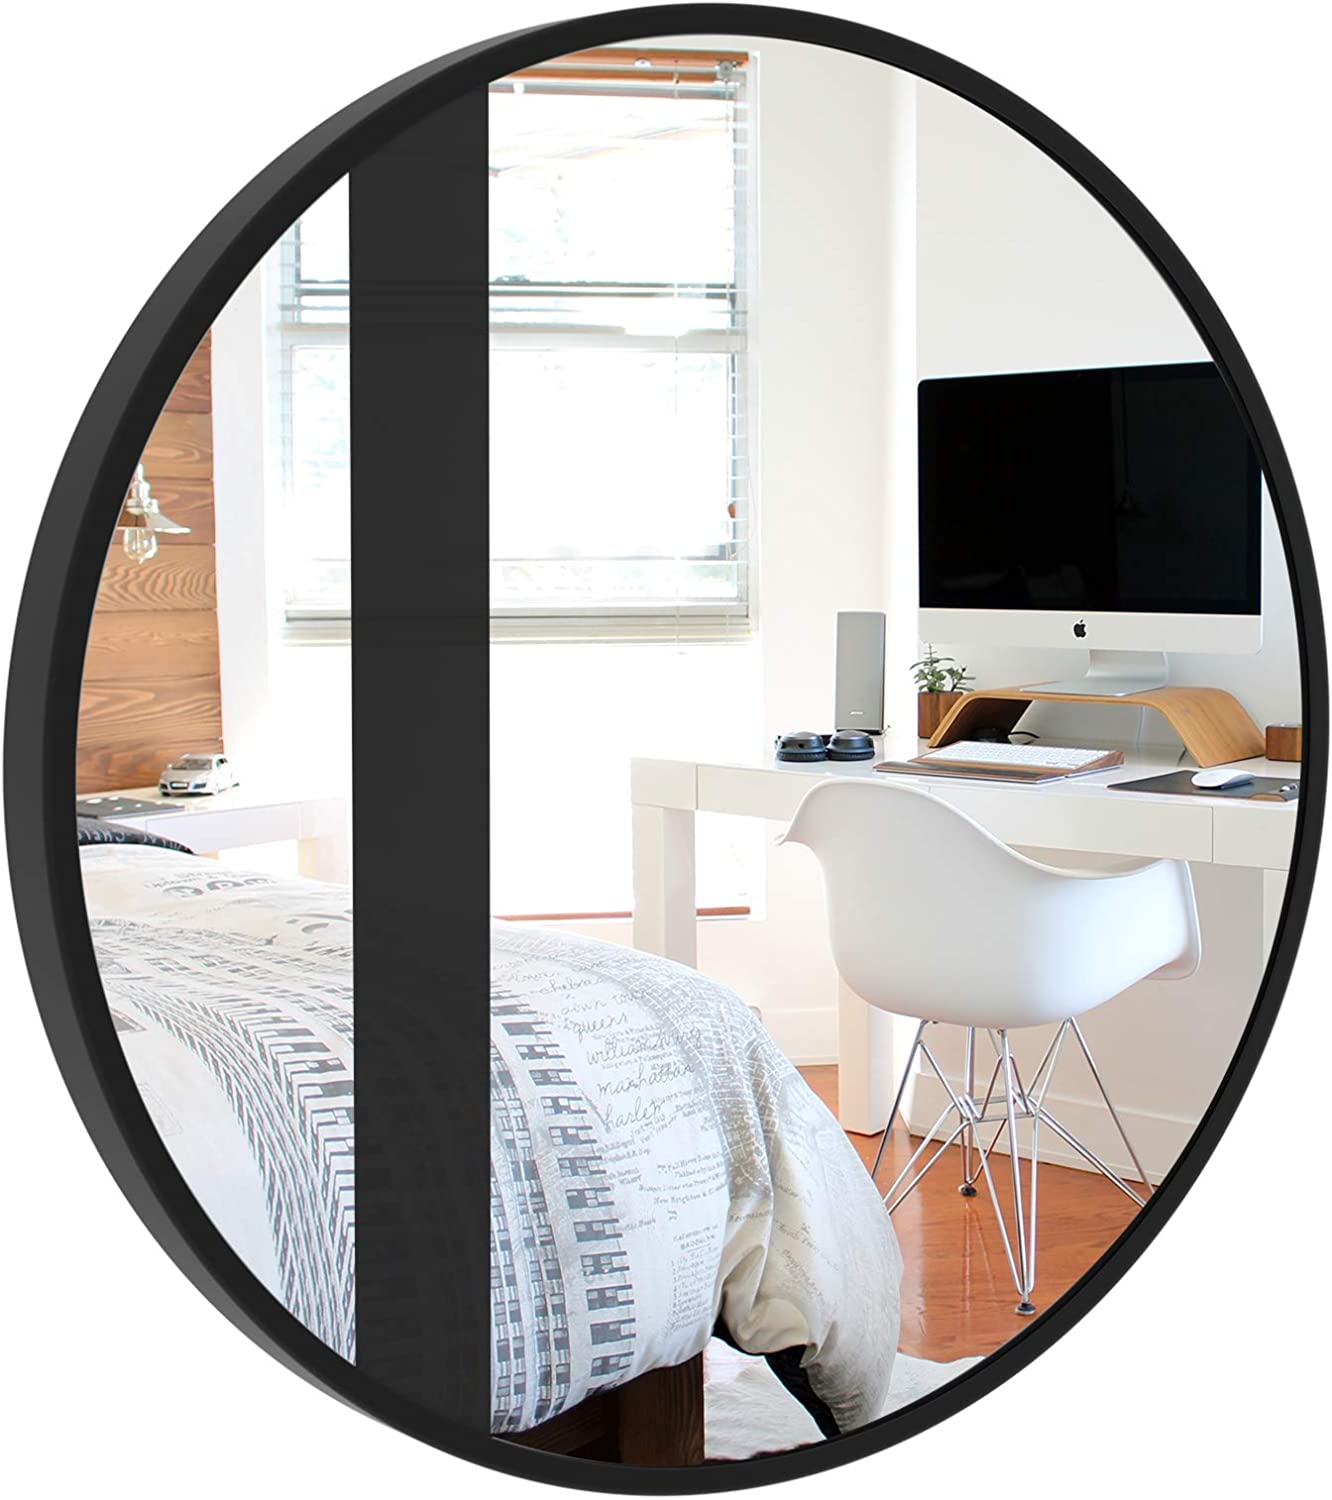 CLSYO Wall Mirror  Metal Frame Mirror 20in Round Wall Mirror with Black Stripes for Entryways, Living Rooms, Bathroom, Washrooms and More (Black)